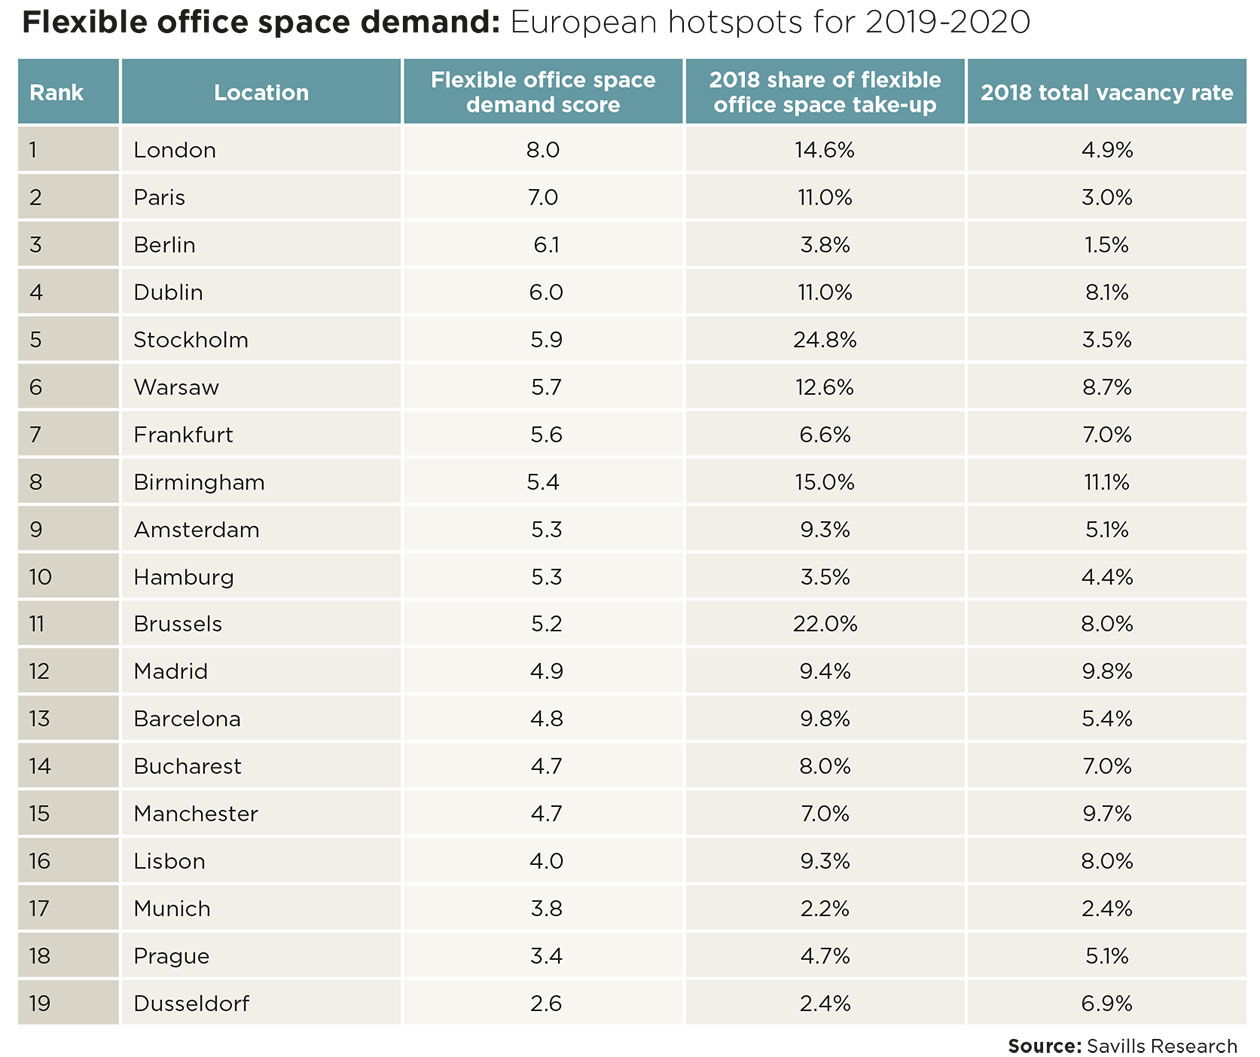 Flexible office space demand: European hotspots for 2019-2020